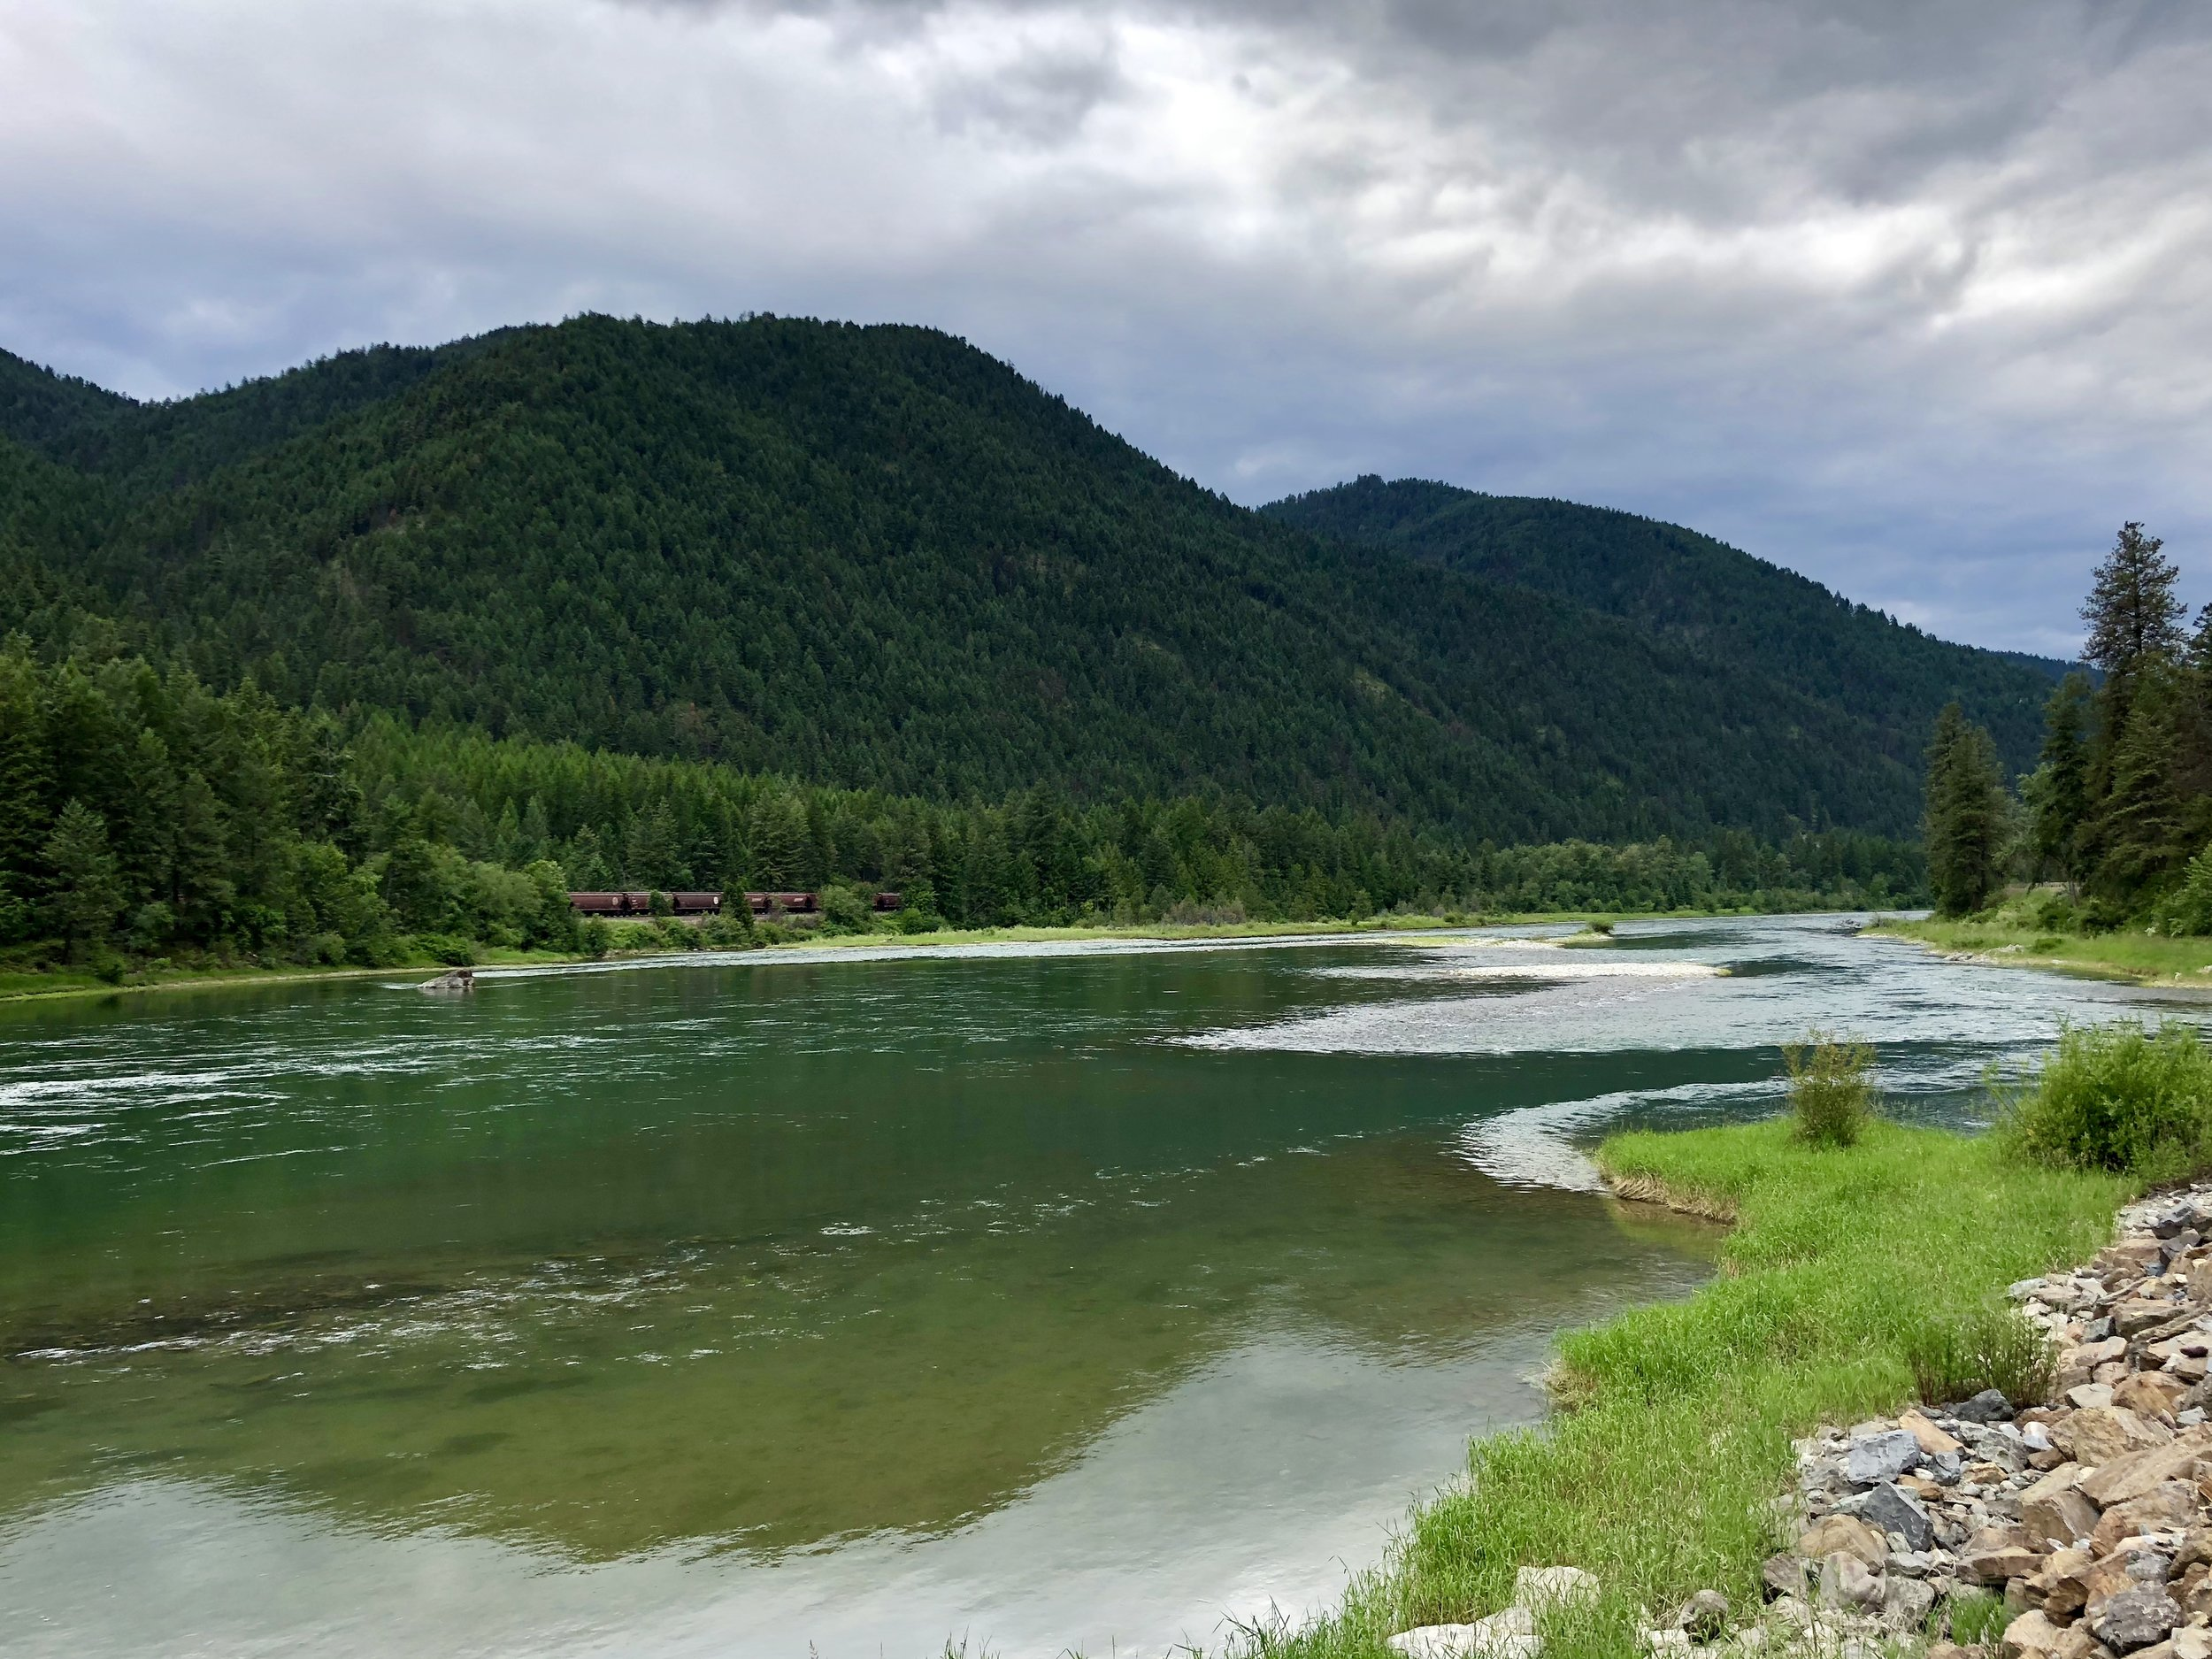 The Kootenai River about 5 miles north of Libby.